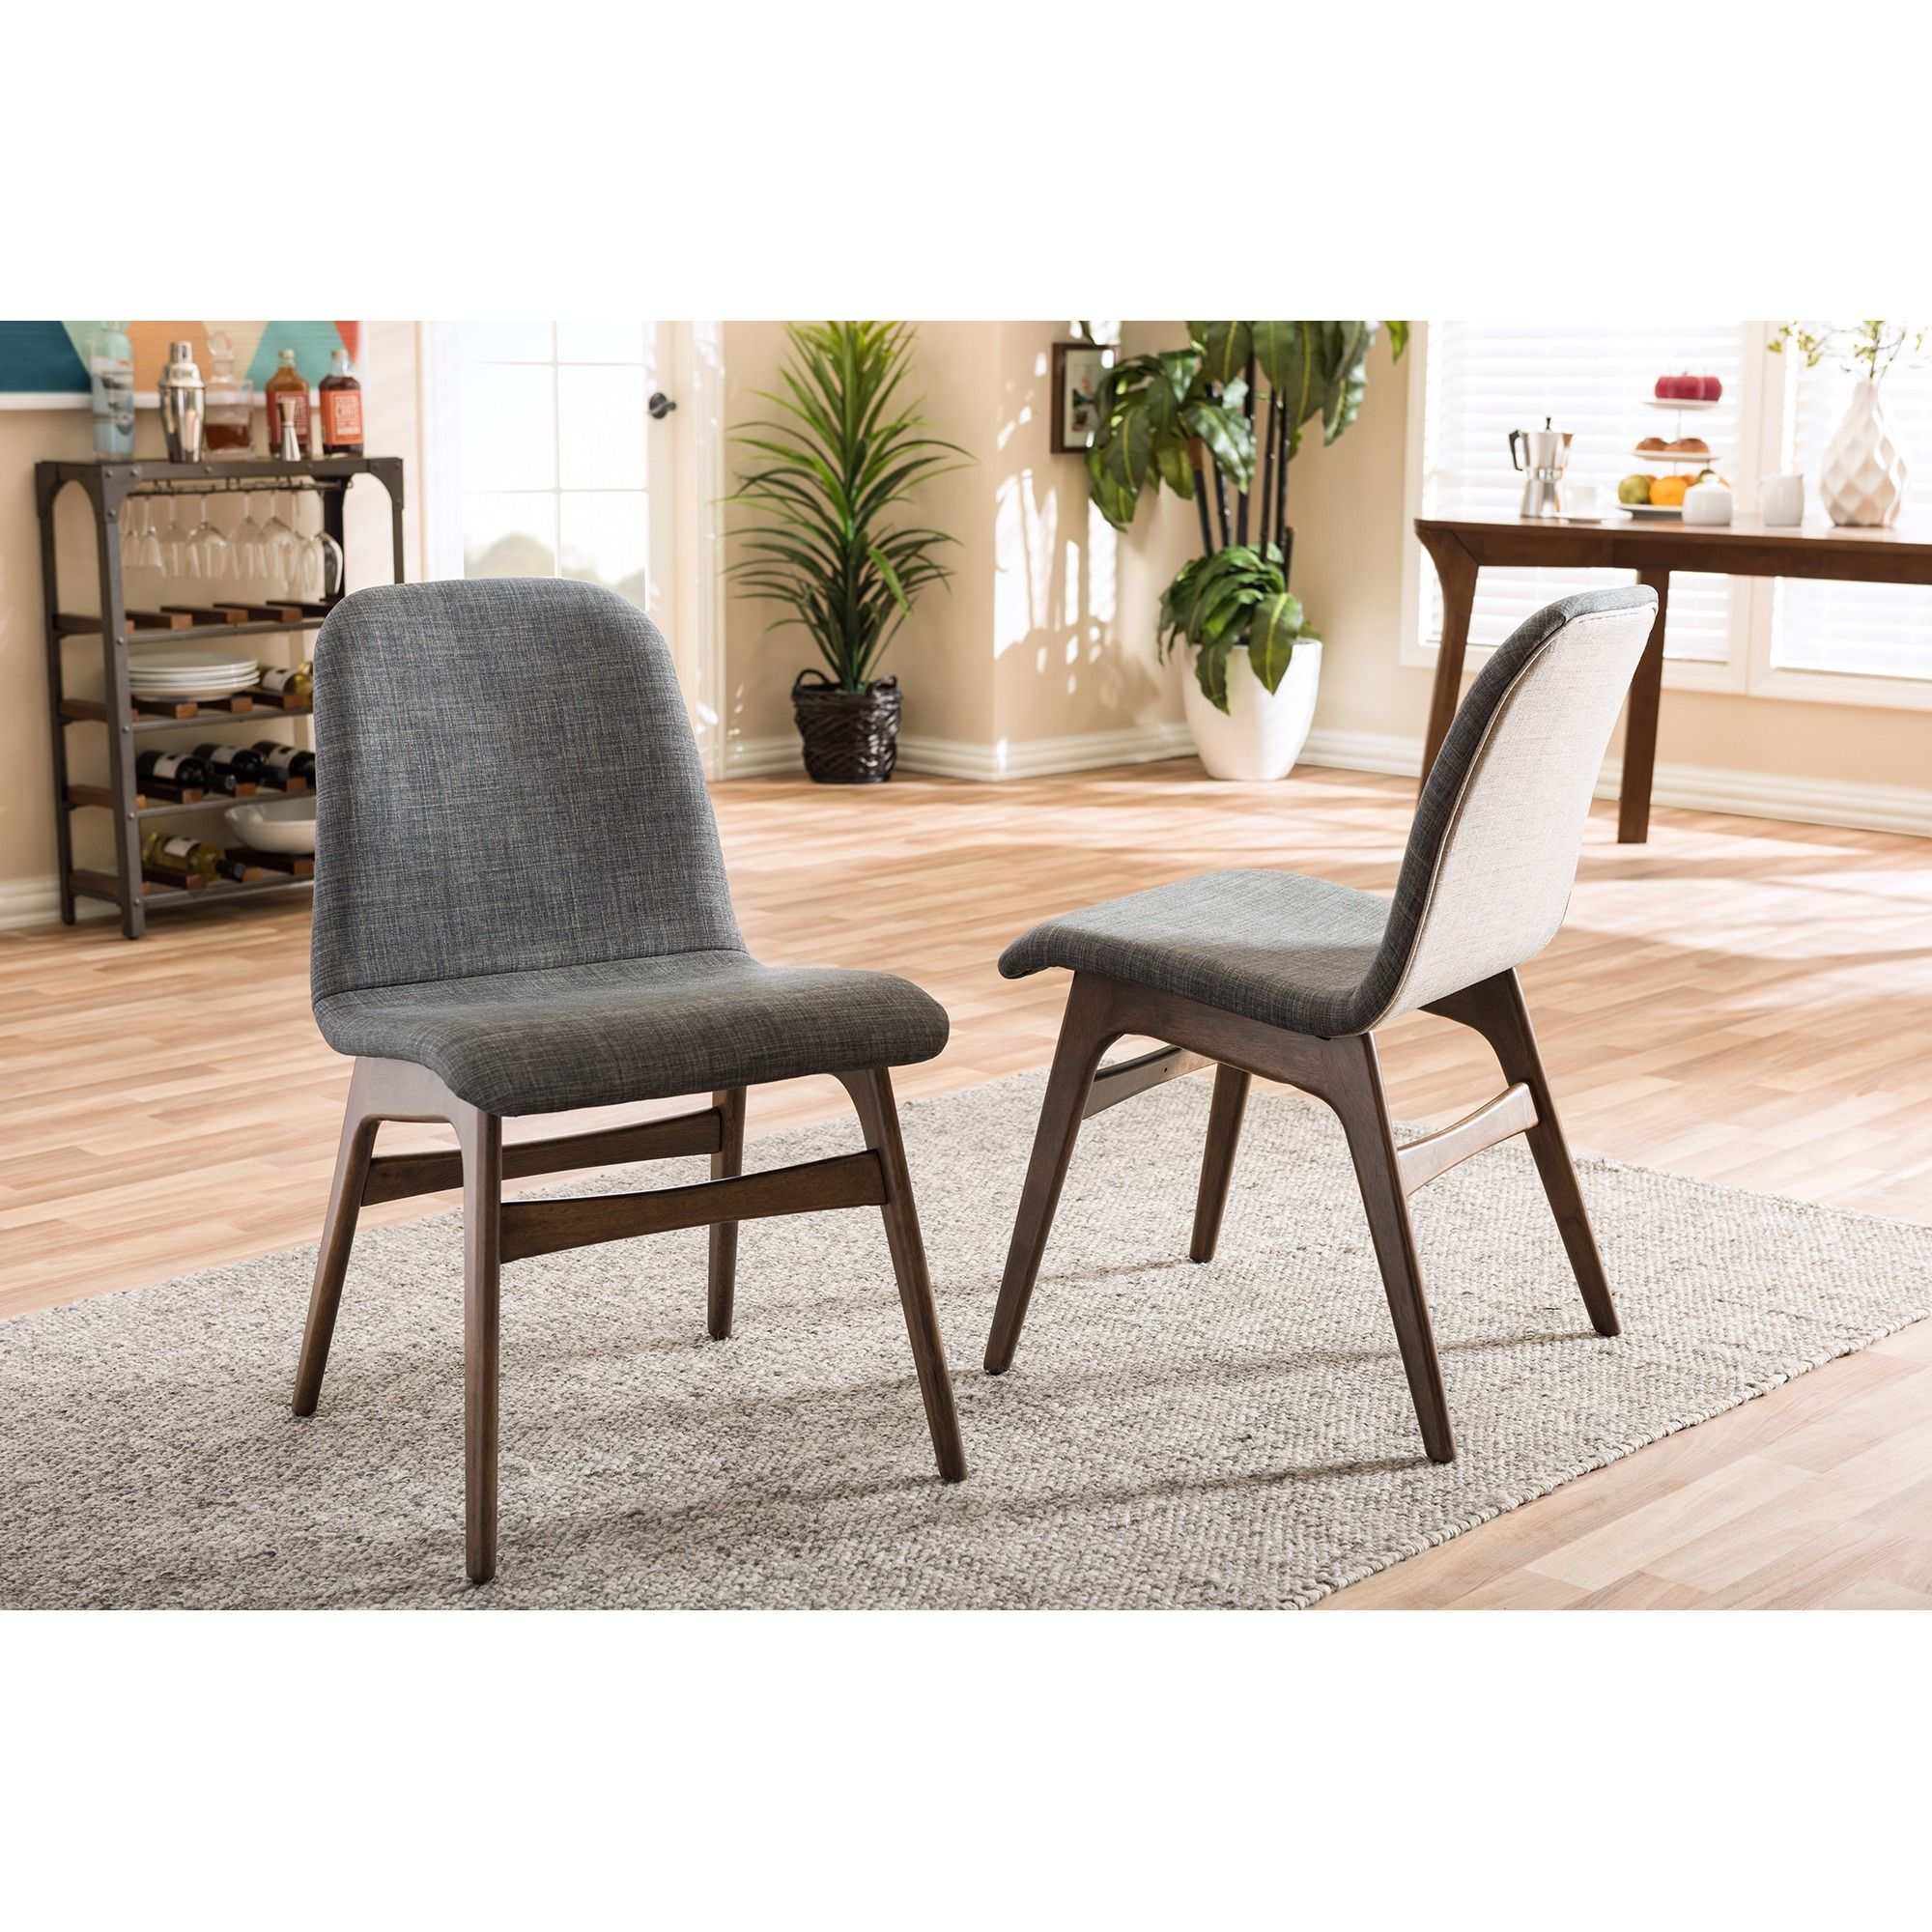 Baxton Studio Embrace Mid Century Retro Modern Scandinavian Style Dark Grey  Fabric Upholstered Walnut Finish Dining Chair Set, 2 By Baxton Studio